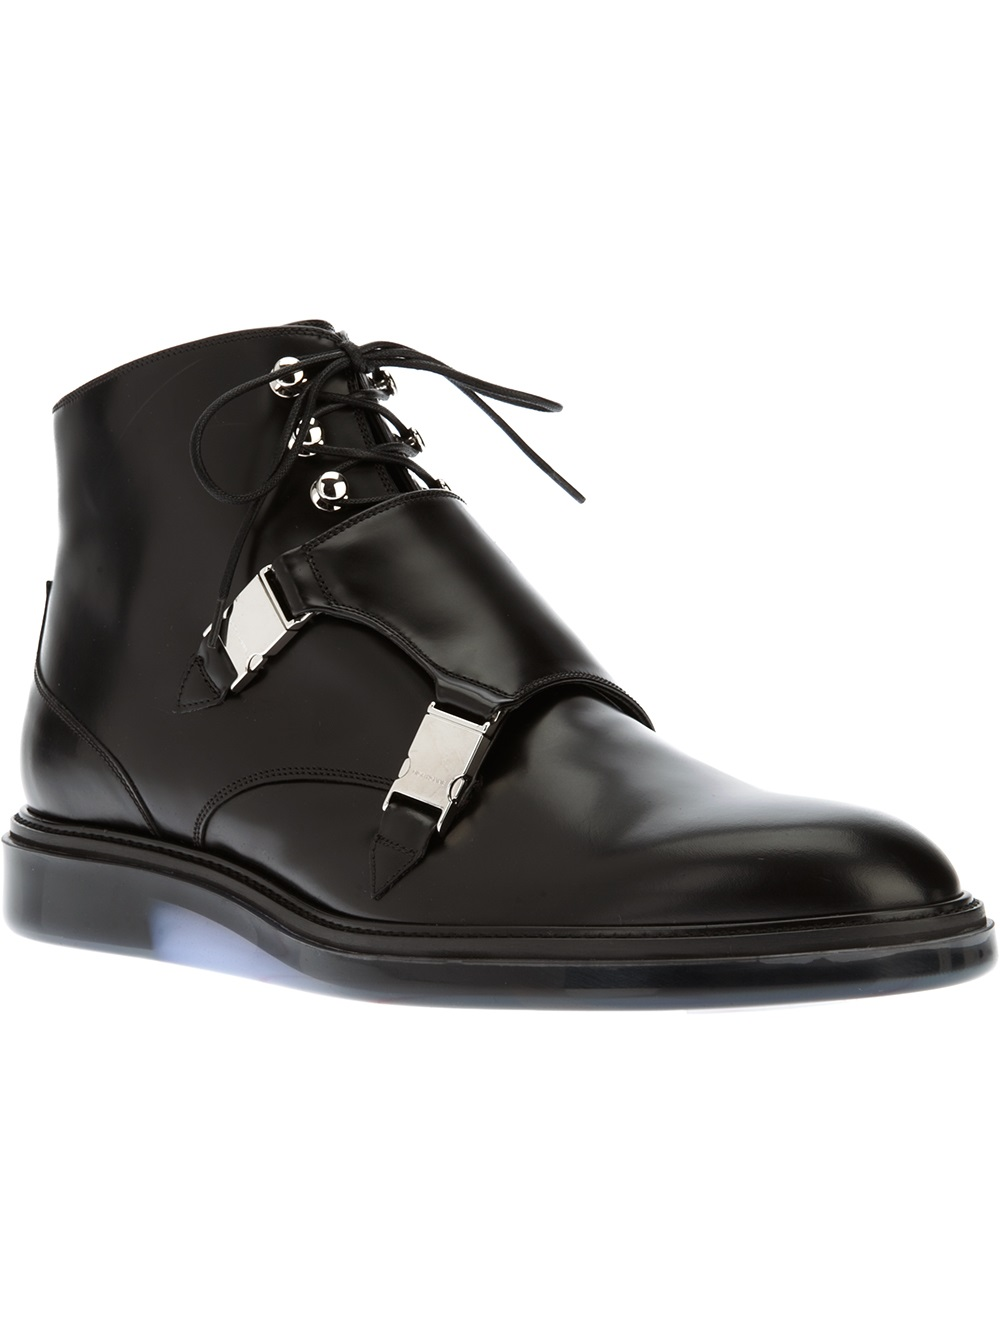 Dior Homme Laceup Shoe In Black For Men Lyst